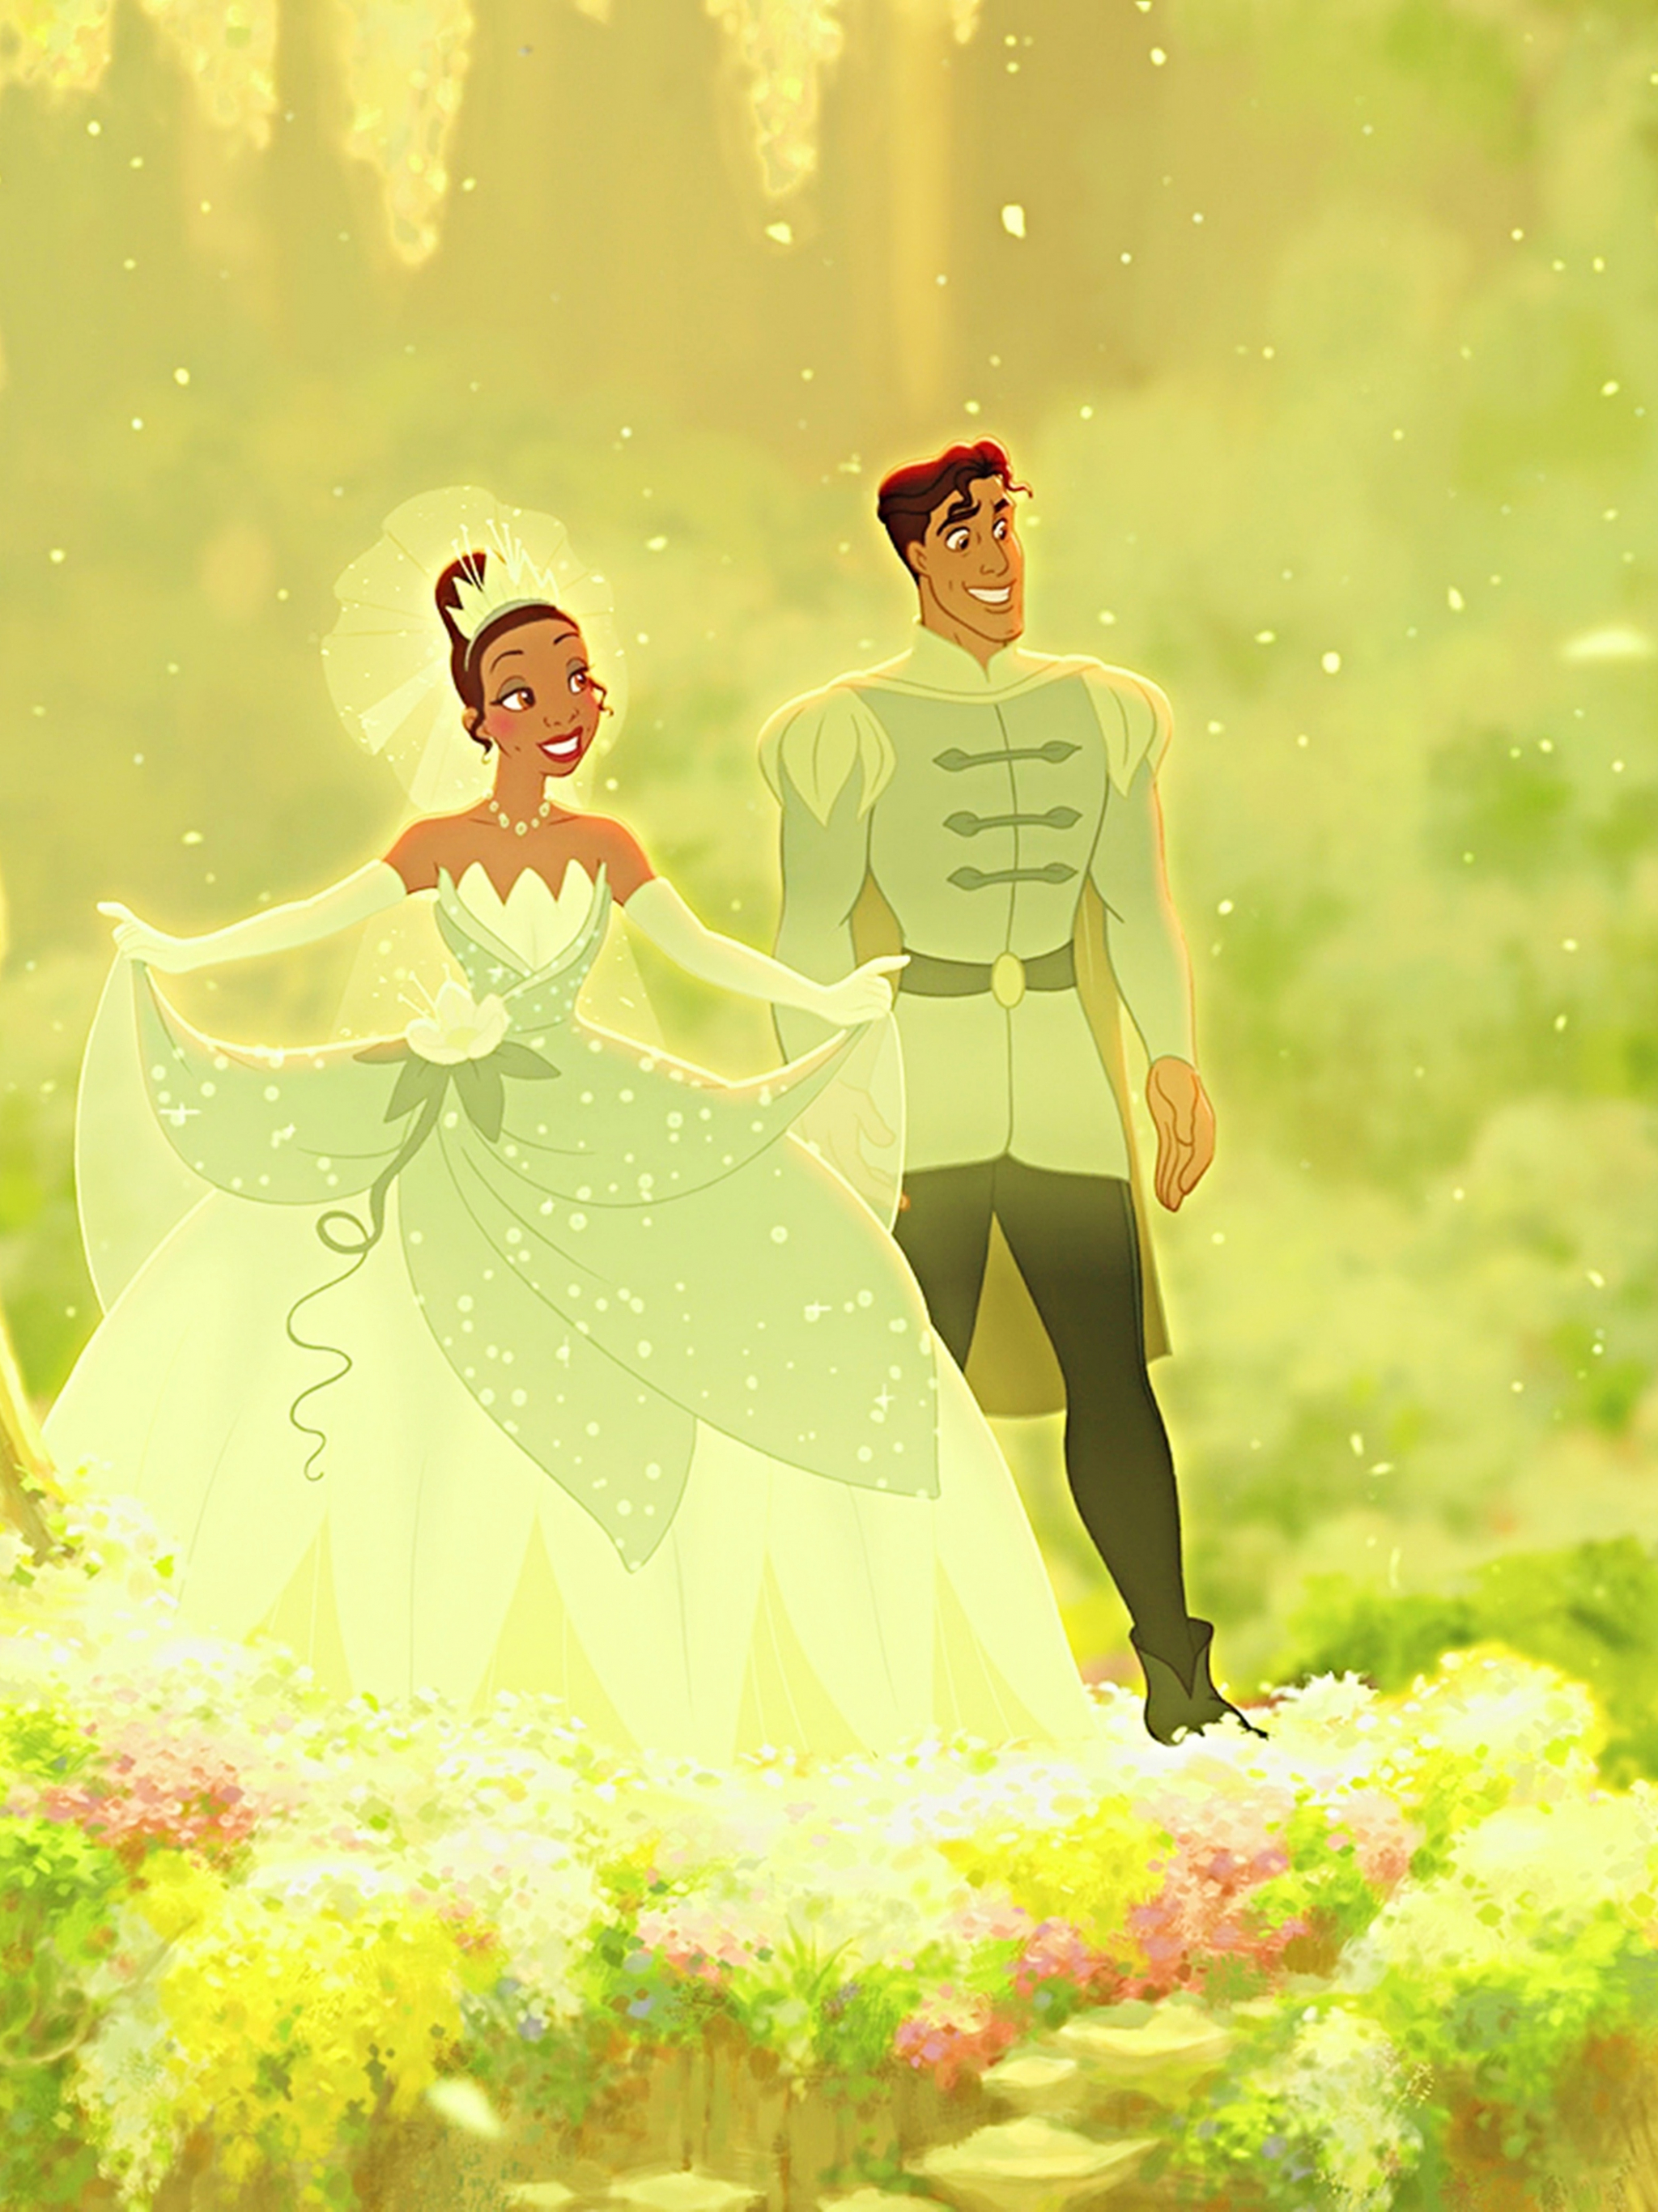 Free Download Princess Tiana Images Crazy Gallery 5000x2813 For